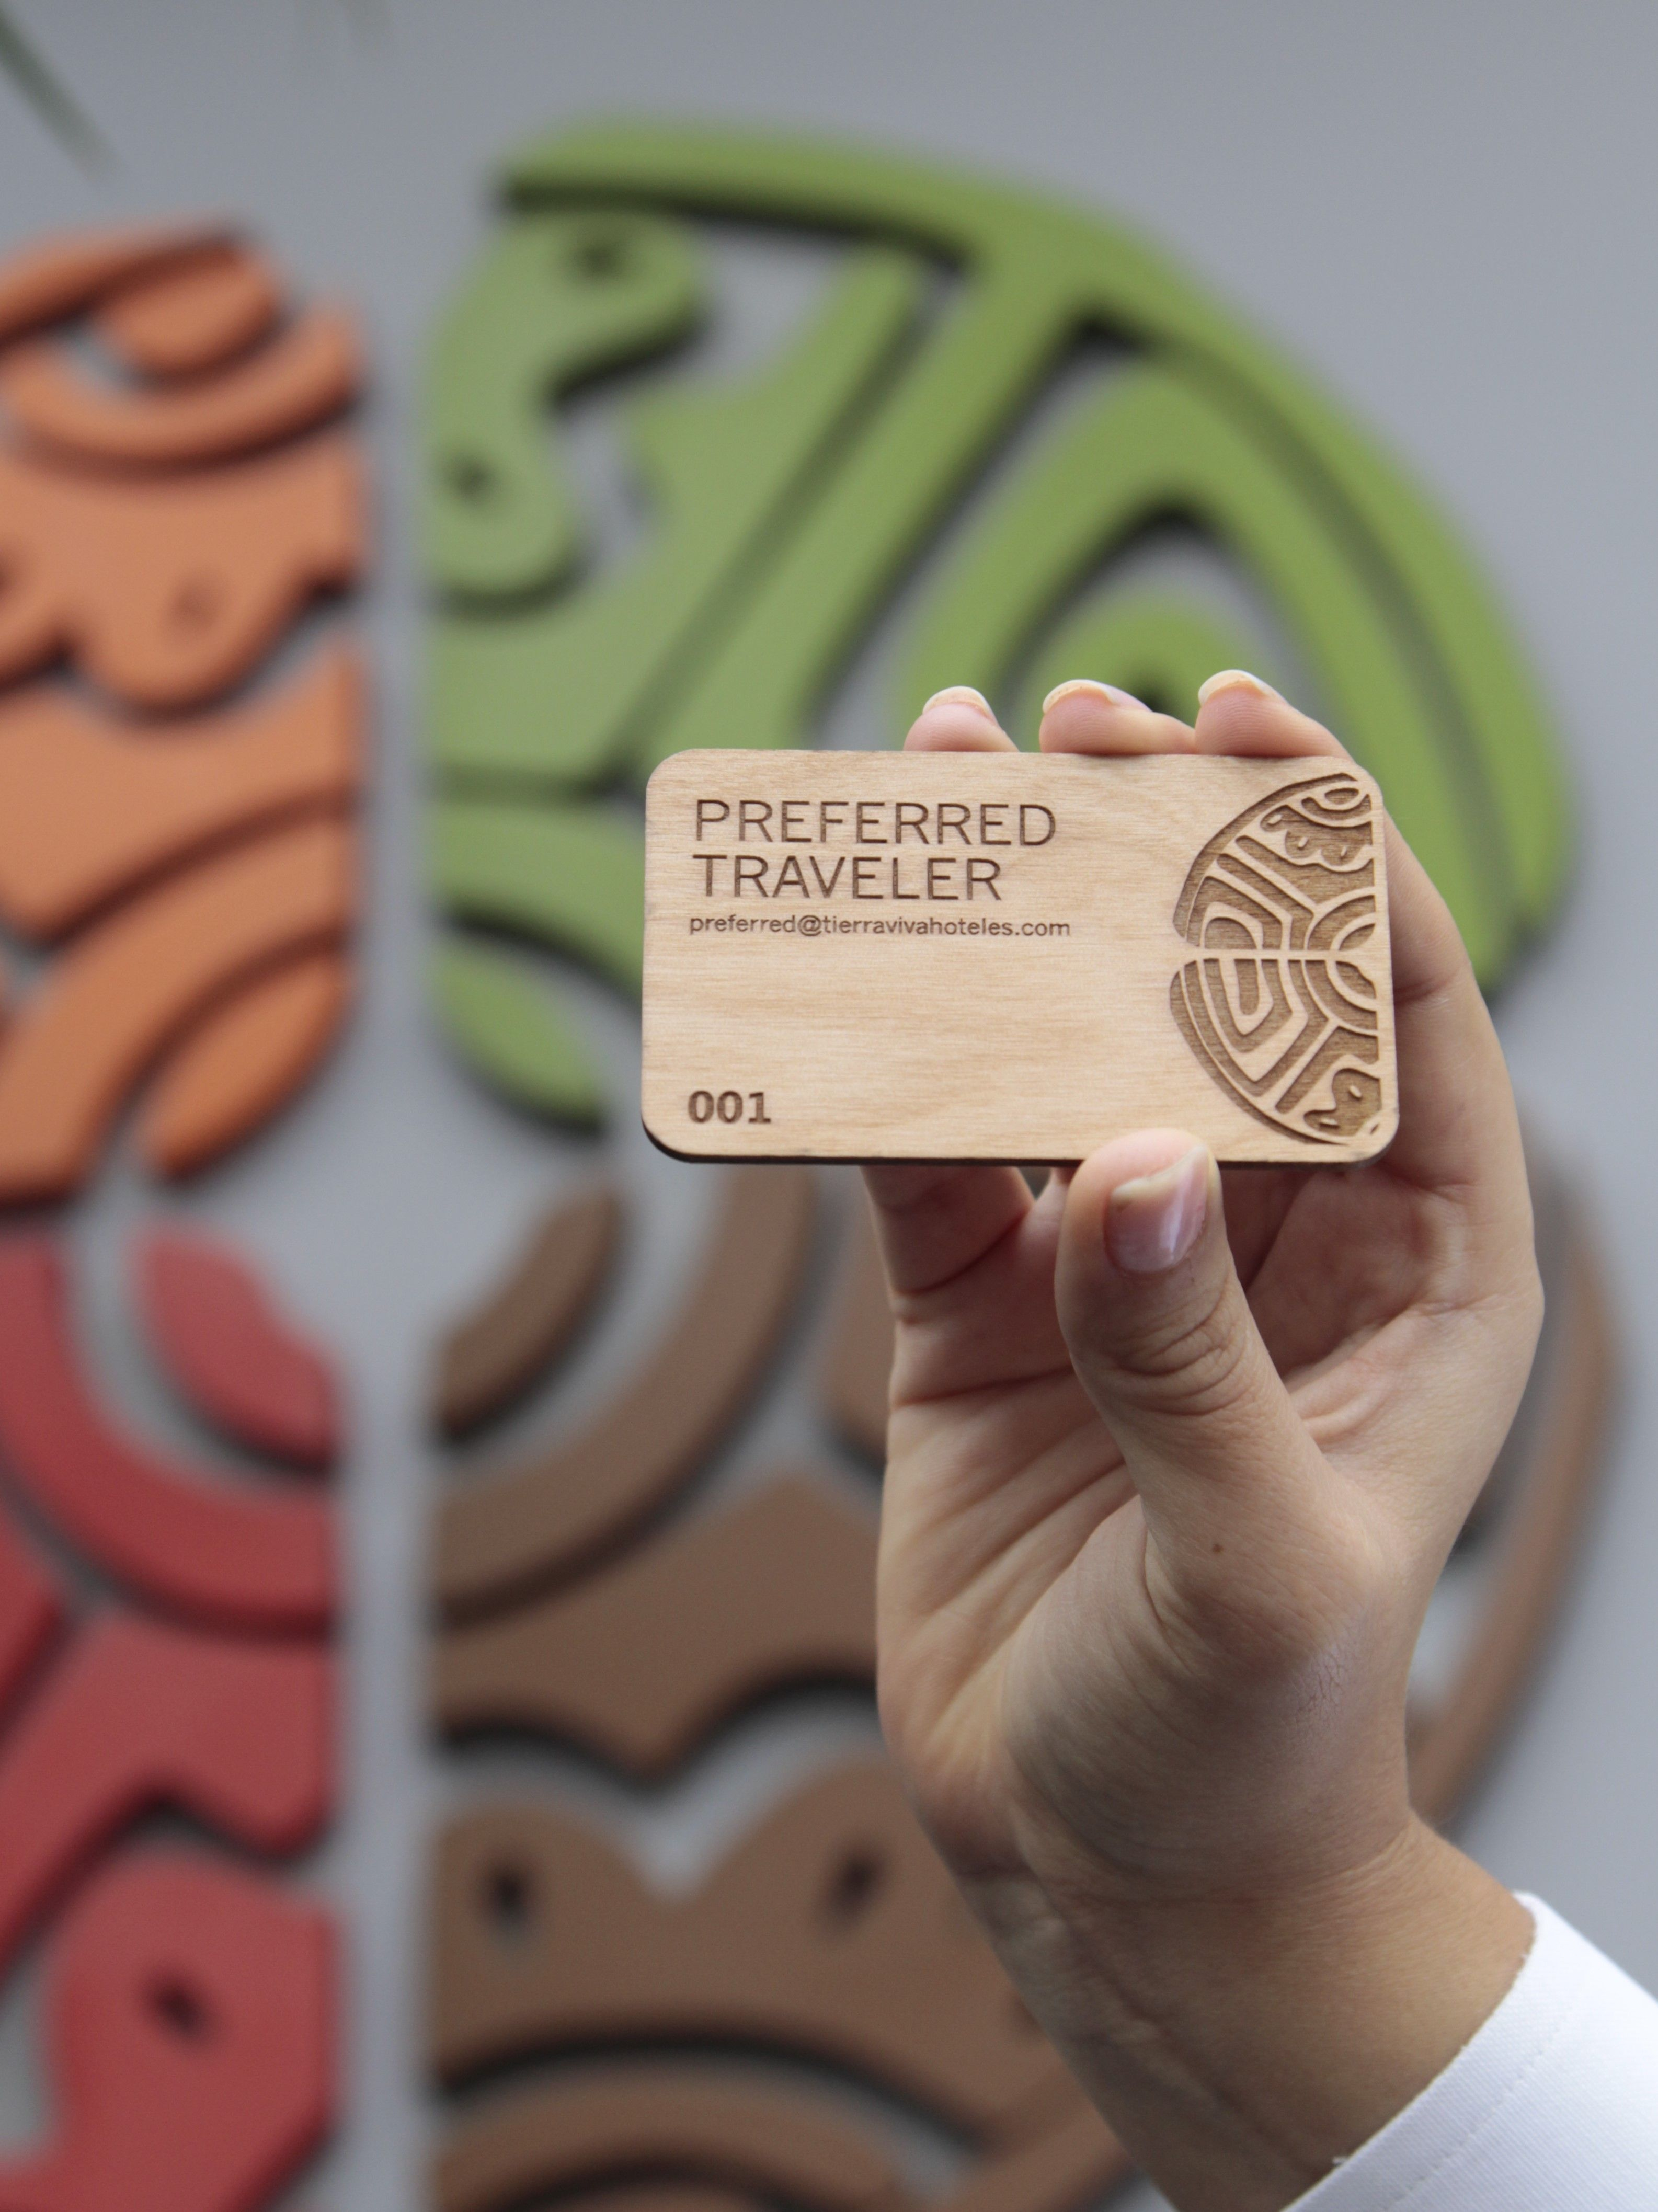 Wood Laser Engraved Business Card For A Hotel In Peru Wood Business Cards Hotel Card Hotel Key Cards